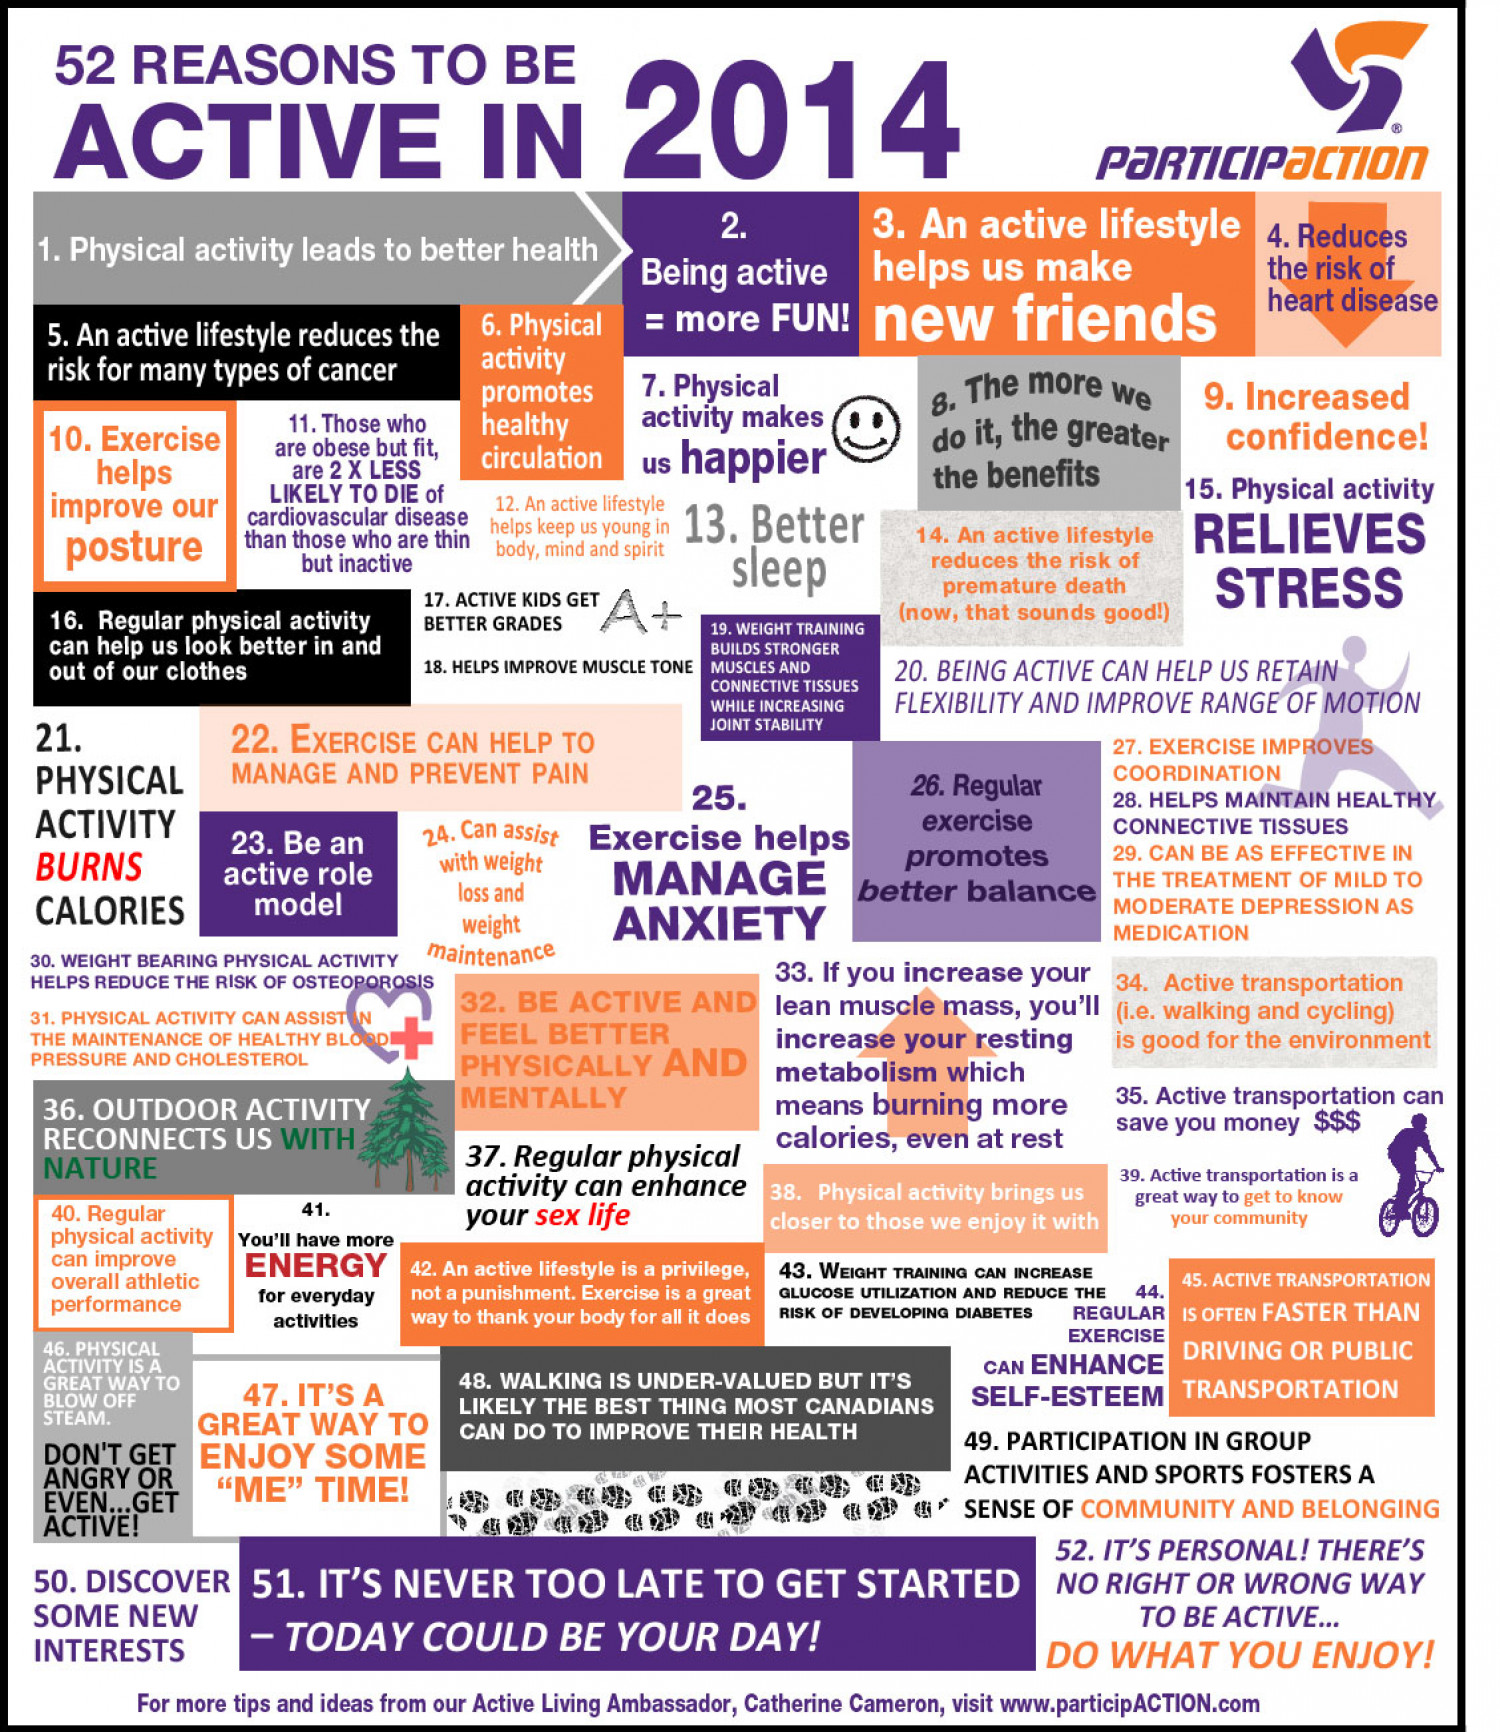 52 Reasons to be Active in 2014 Infographic